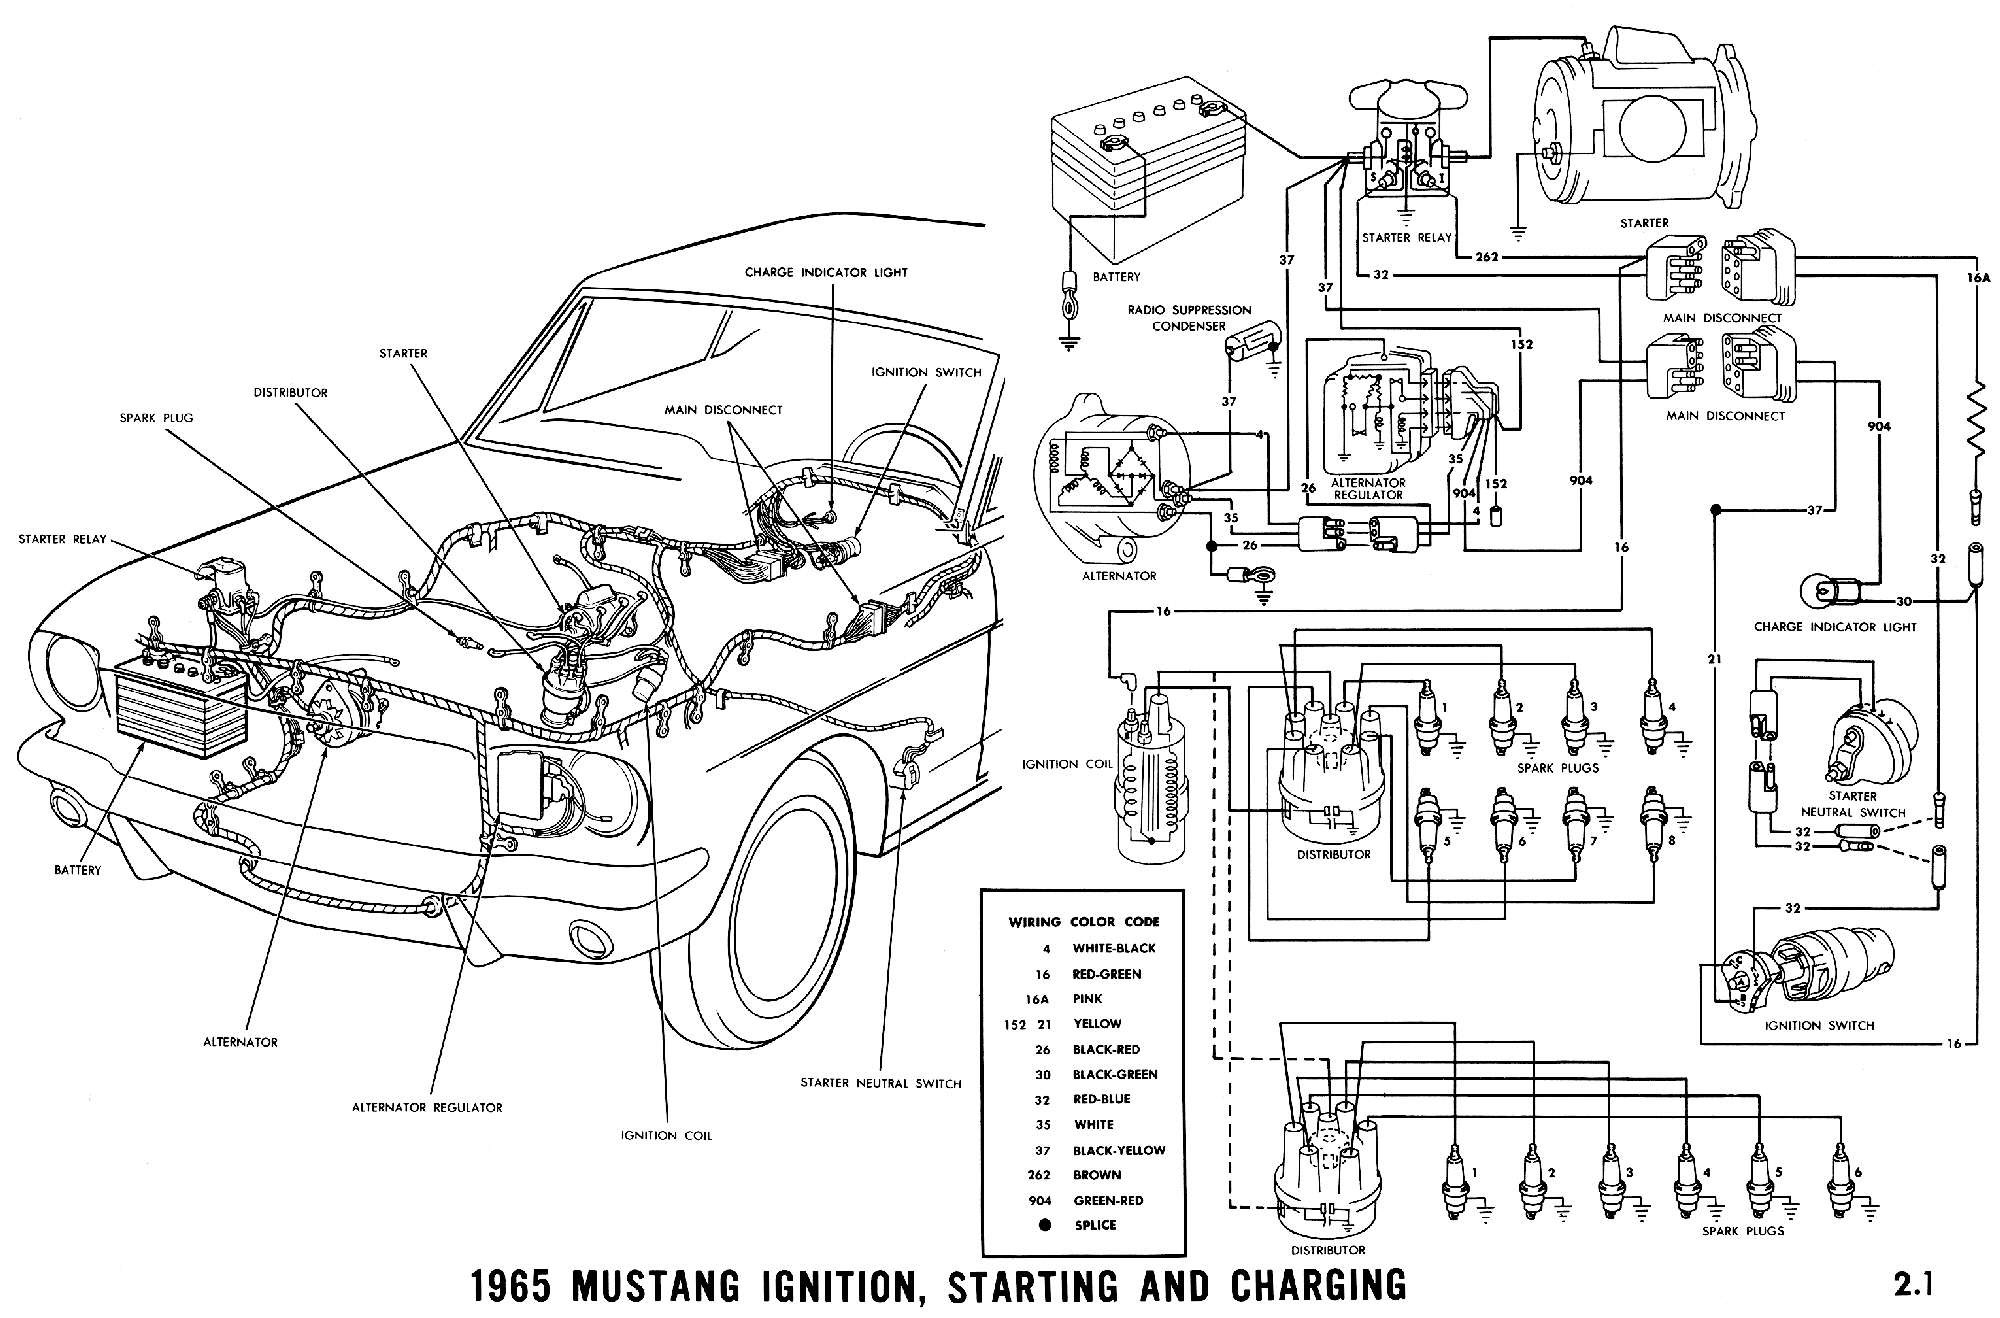 2000 Mustang Engine Diagram Wiring Diagram 1966 ford